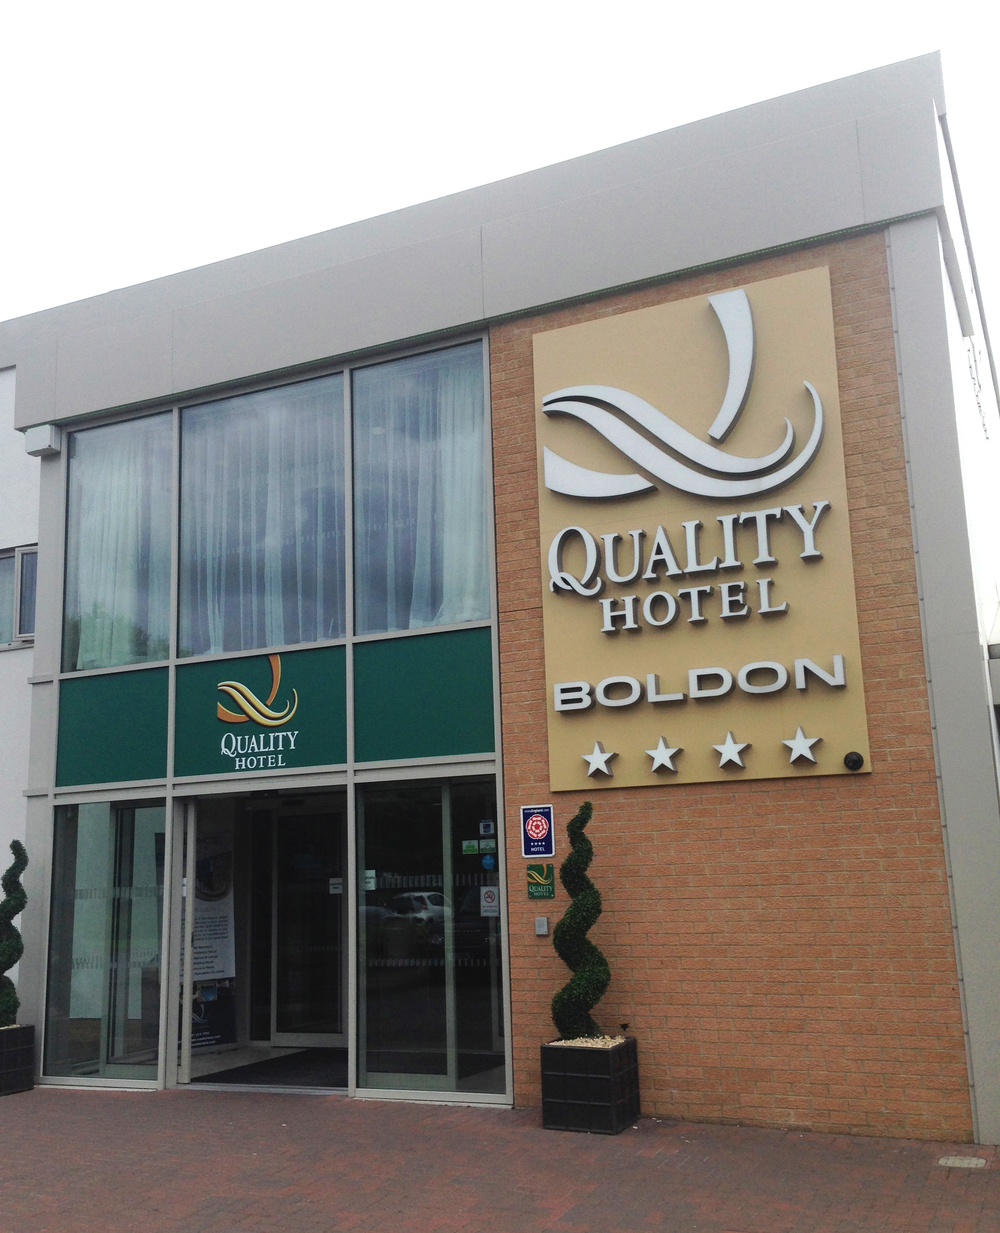 The Quality Hotel, Boldon, near South Shields.